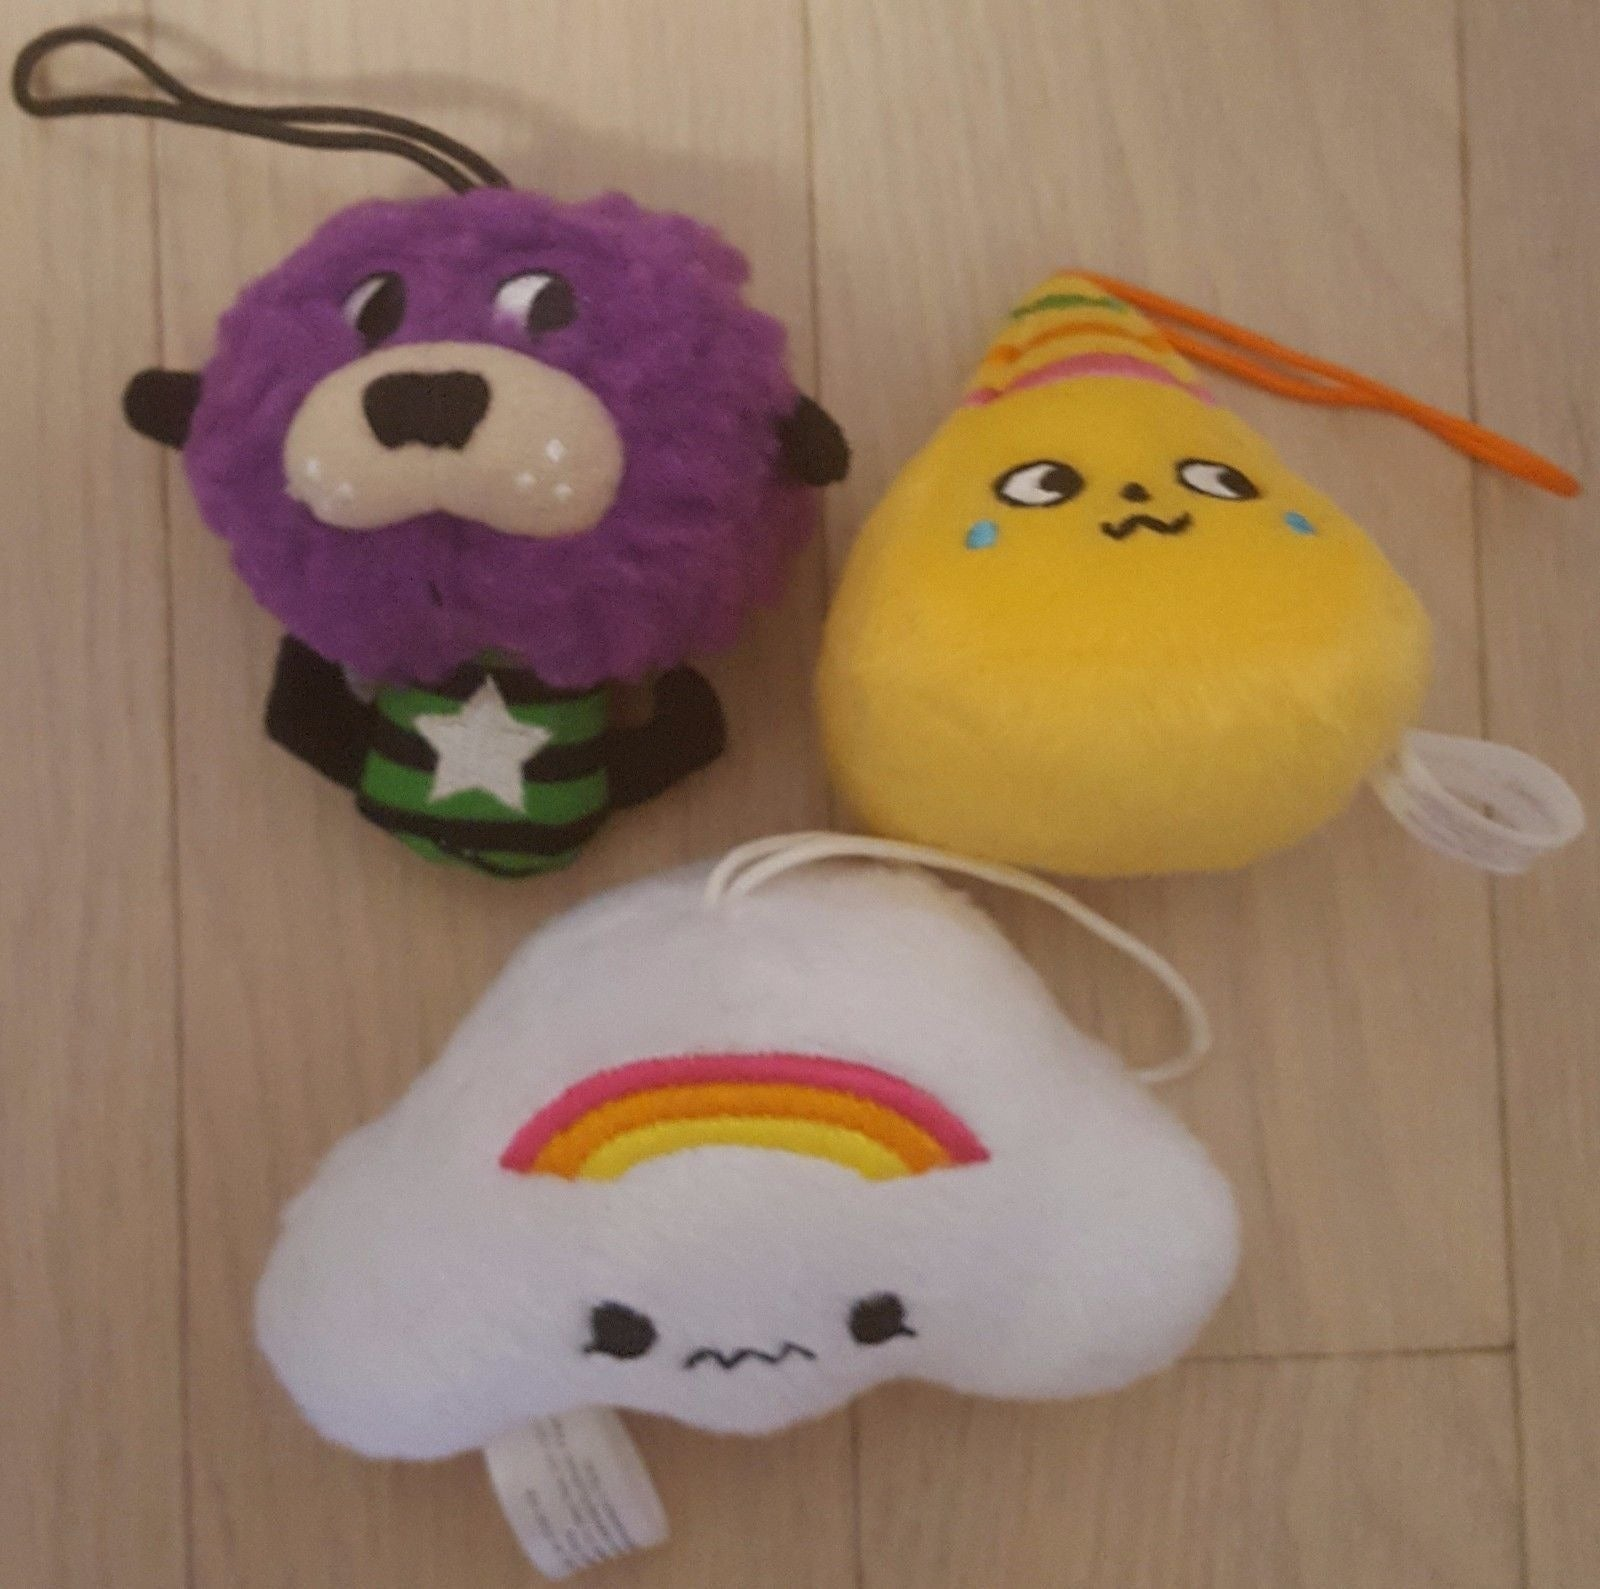 Tado Fortune Pork Series 2 Lot - Other Toys